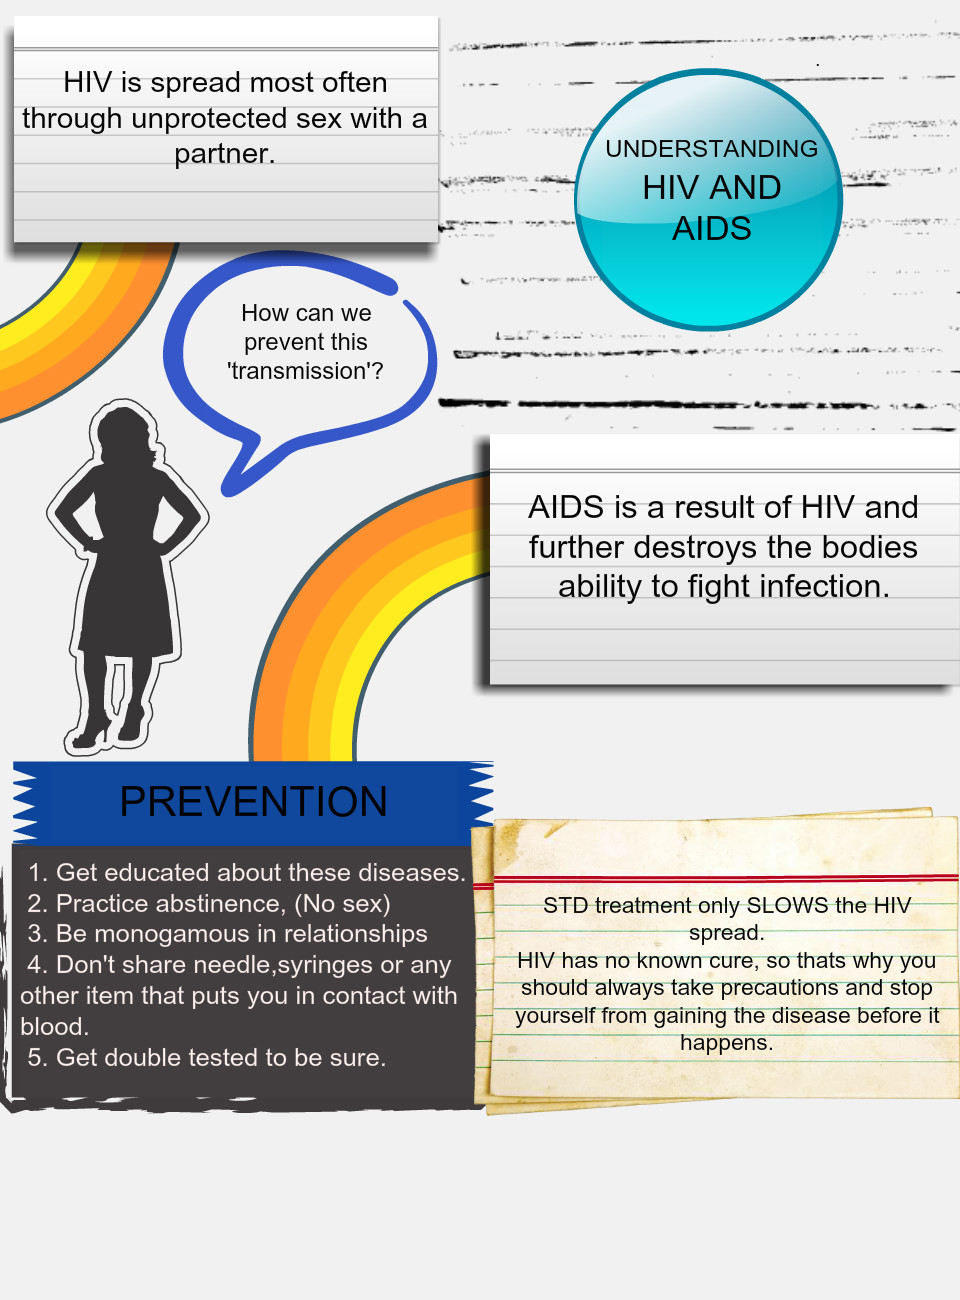 characteristics of aids and hiv The main characteristics of hiv are:1 destroys all the cells in your body2 can only be transmitted sexualy(sti)3.